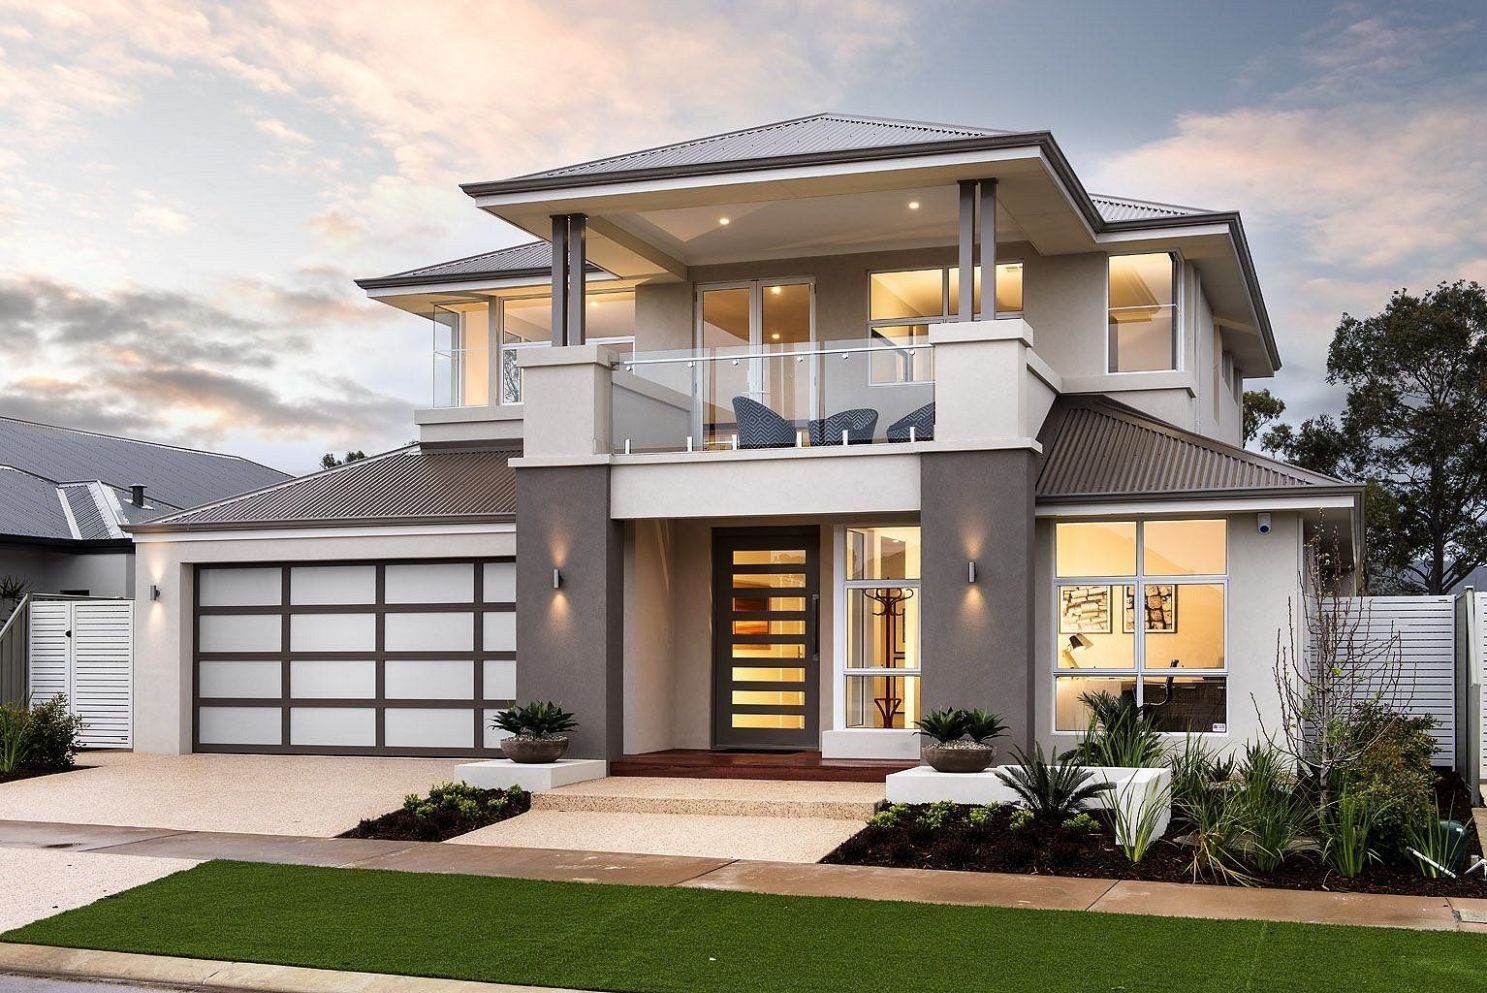 Best 11+ Architecture Homes Ideas Inspirations   Double storey ...